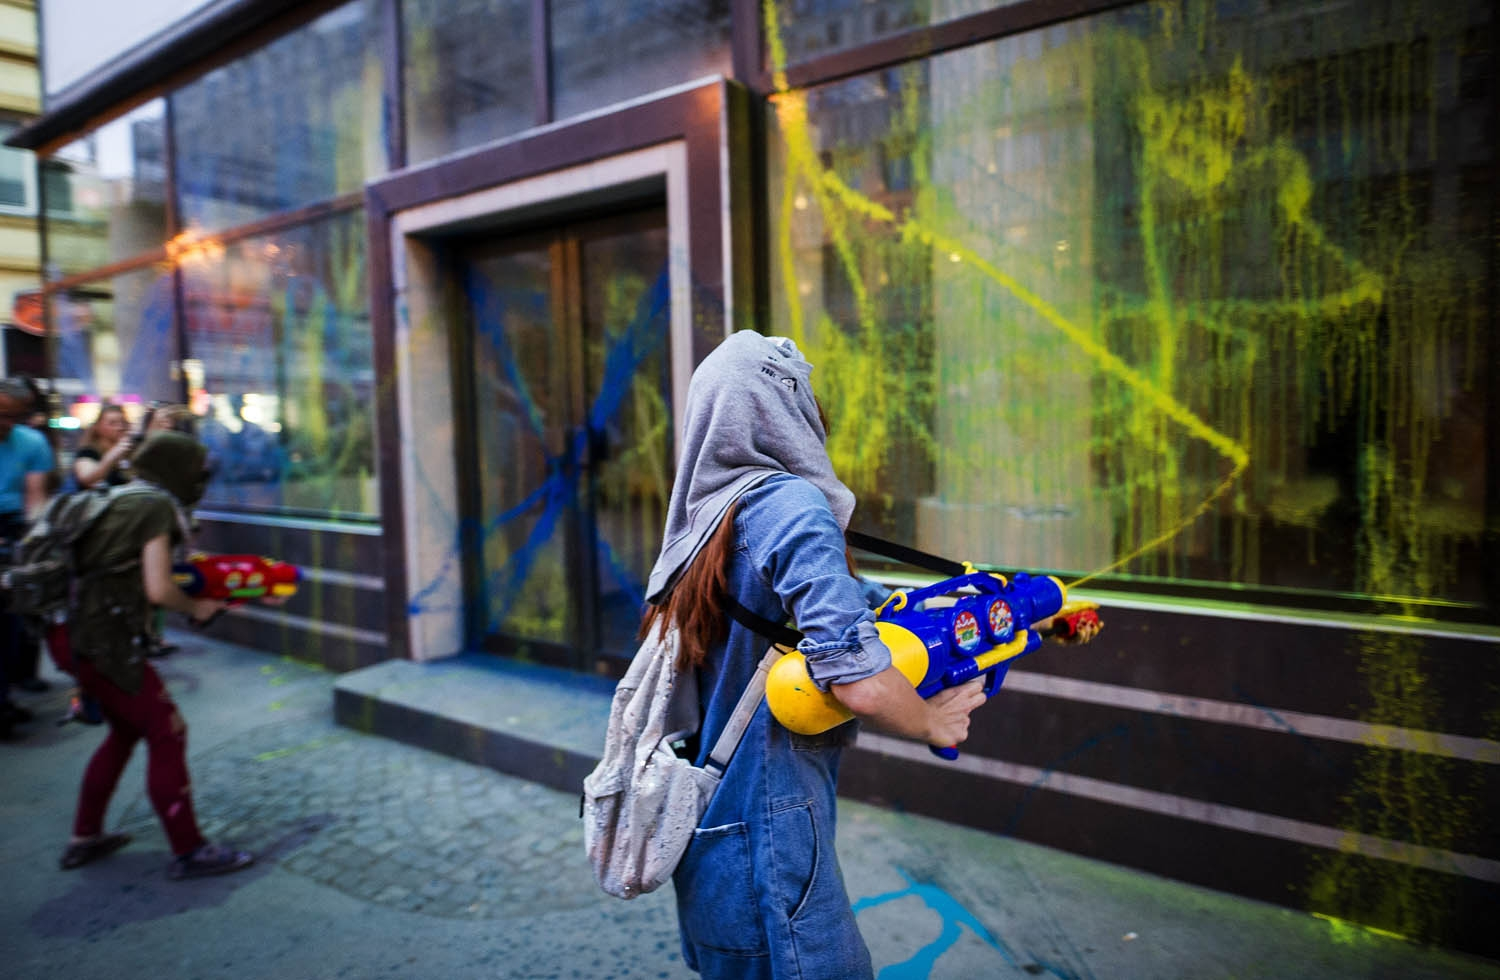 Protestors wearing masks use water guns to spray coloured paint on the public office of President Gjorge Ivanov during an anti-government protest in Skopje on May 31, 2016,